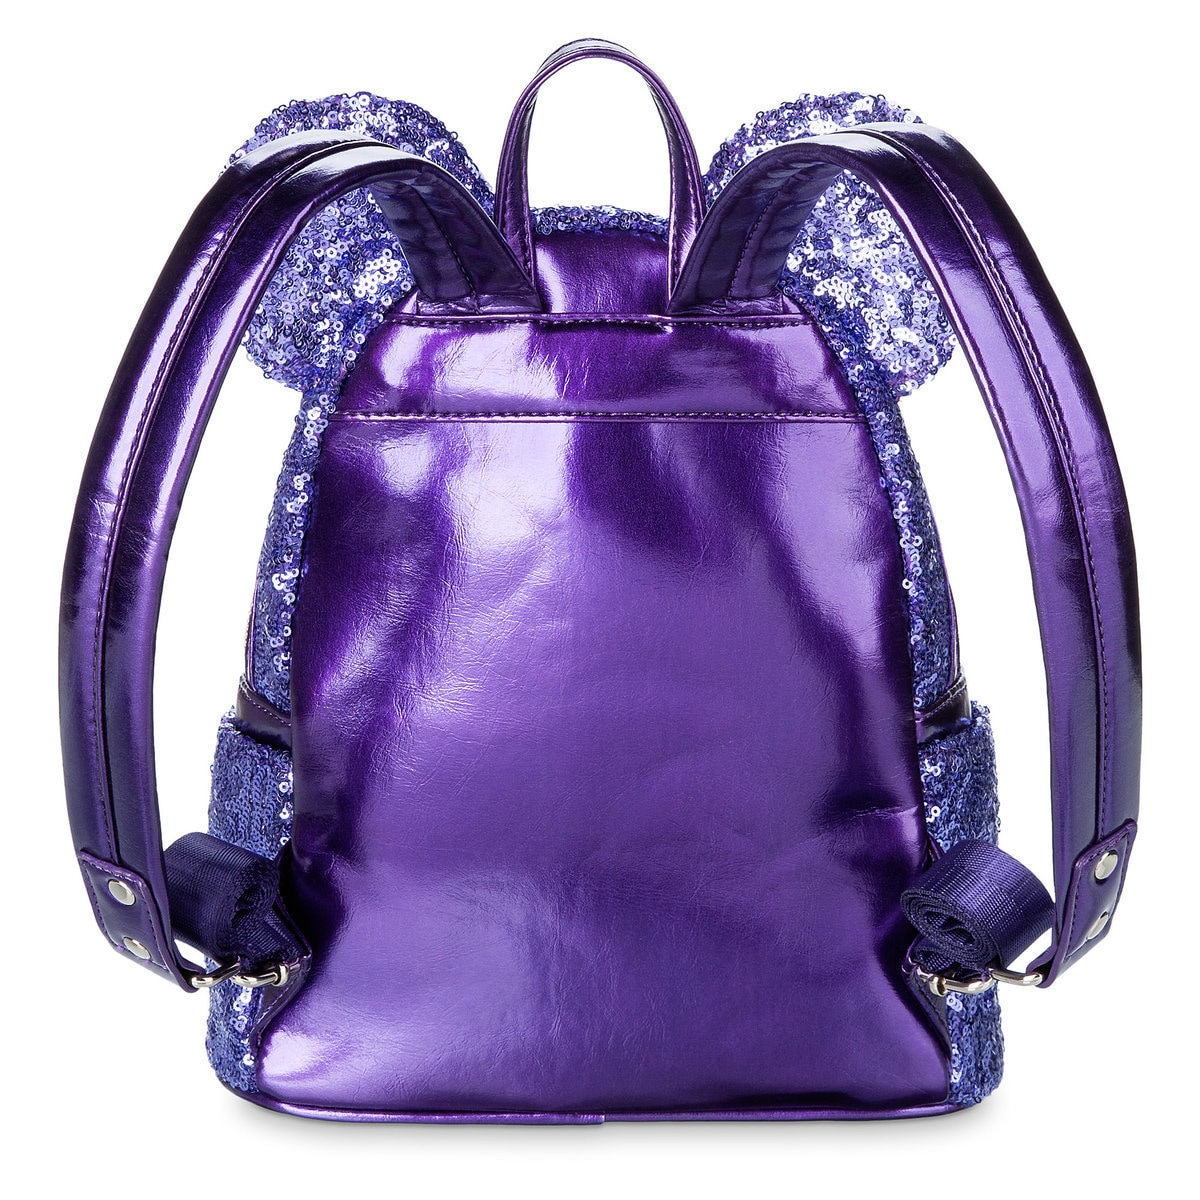 1b0cac13237 Product Image of Minnie Mouse Potion Purple Sequined Mini Backpack by  Loungefly   2